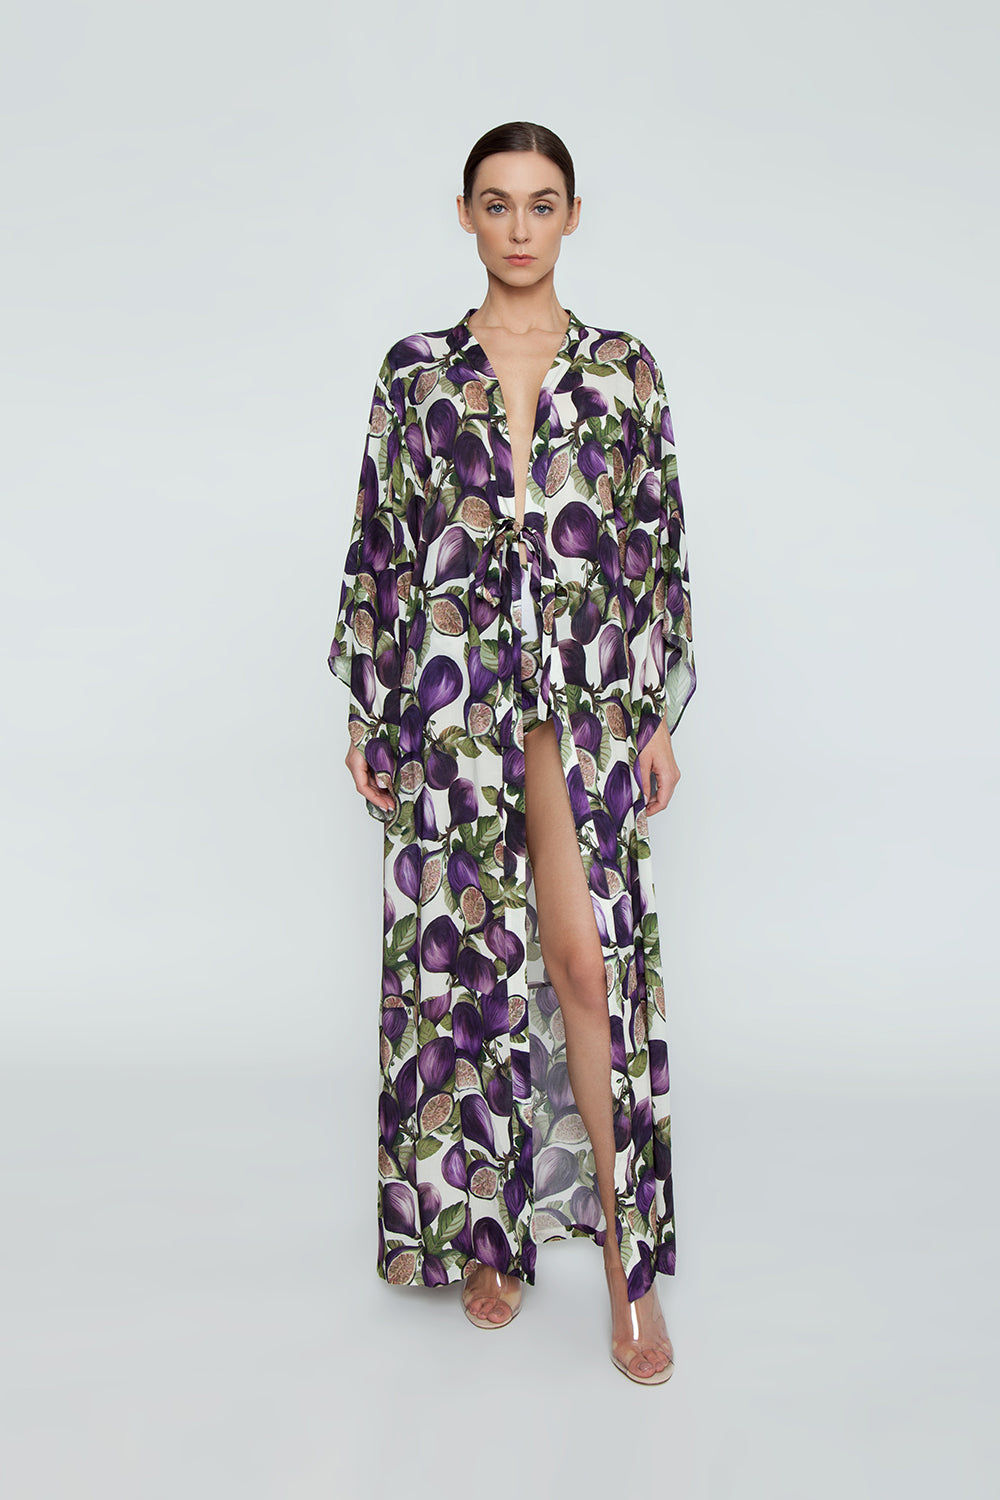 ADRIANA DEGREAS Silk Long Robe Cover-Up - Fig Purple Print Cover Up | Fig Purple Print|Adriana Degreas Long Robe - Fig Purple Print   Long sleeve robe Floor length robe Tie waist detail  Front View